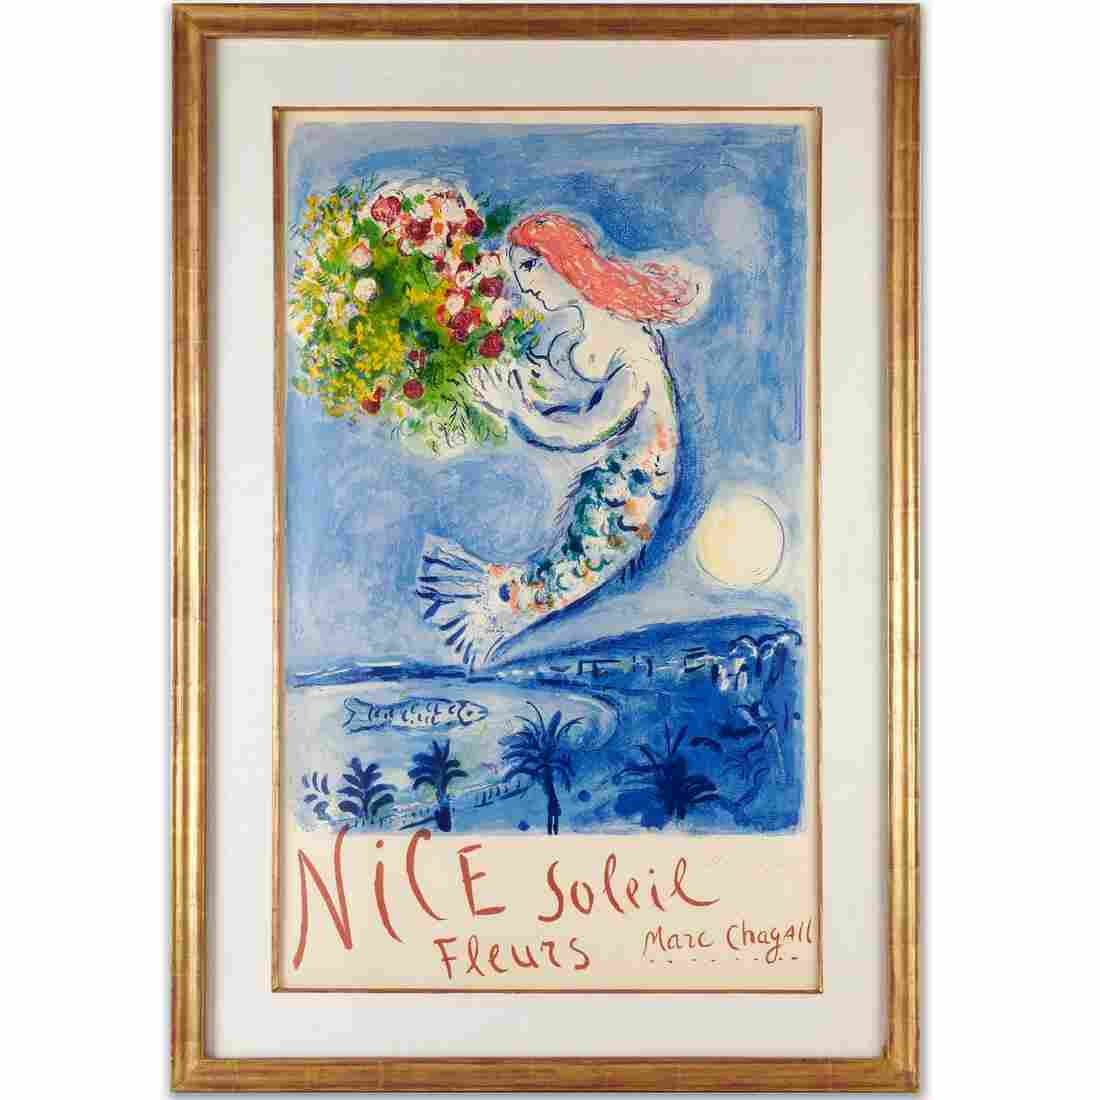 Marc Chagall, signed color lithograph, 1962